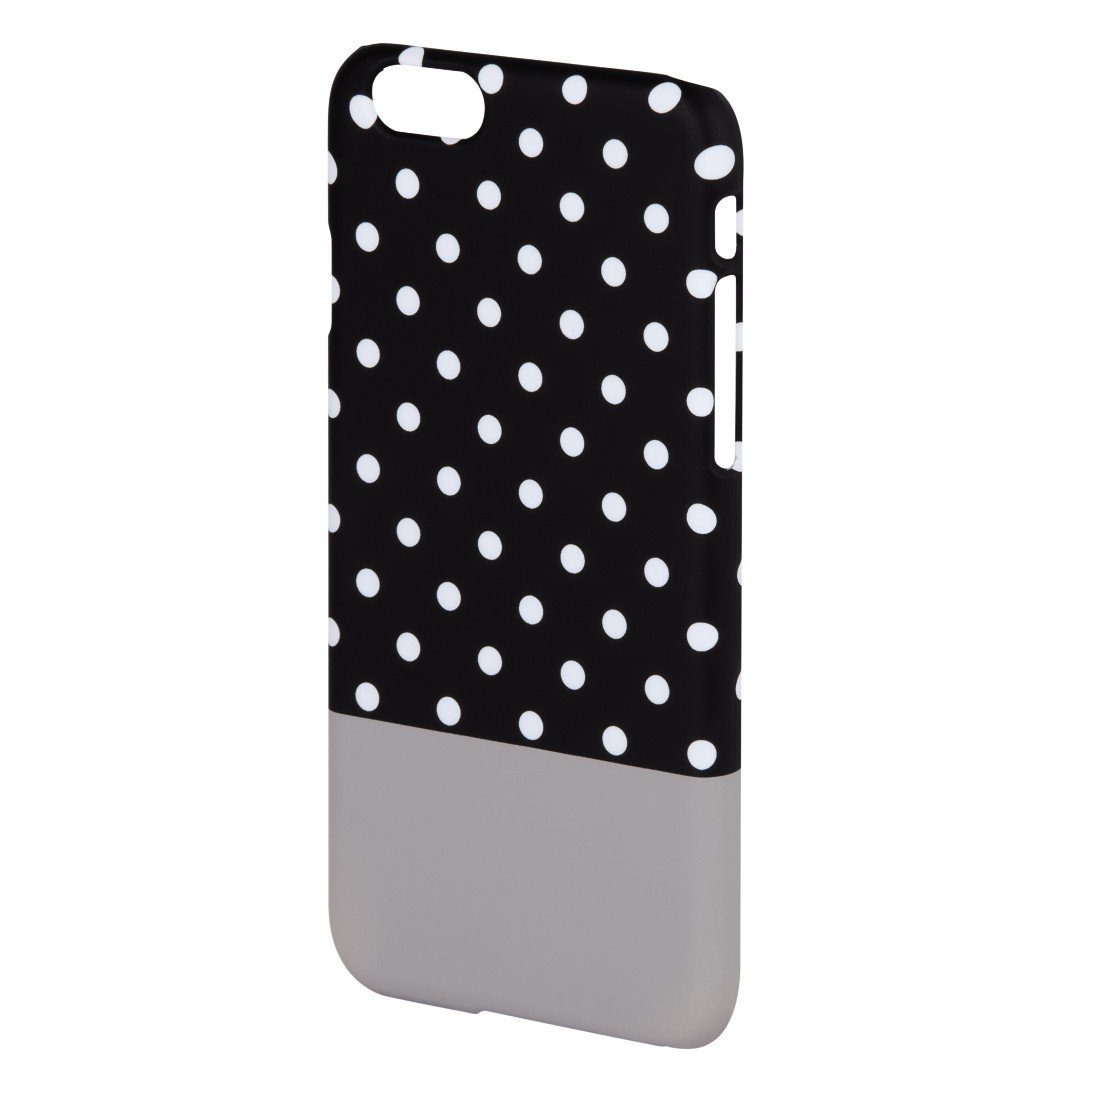 Hama Cover Lovely Dots für Apple iPhone 6, Schwarz/Grau